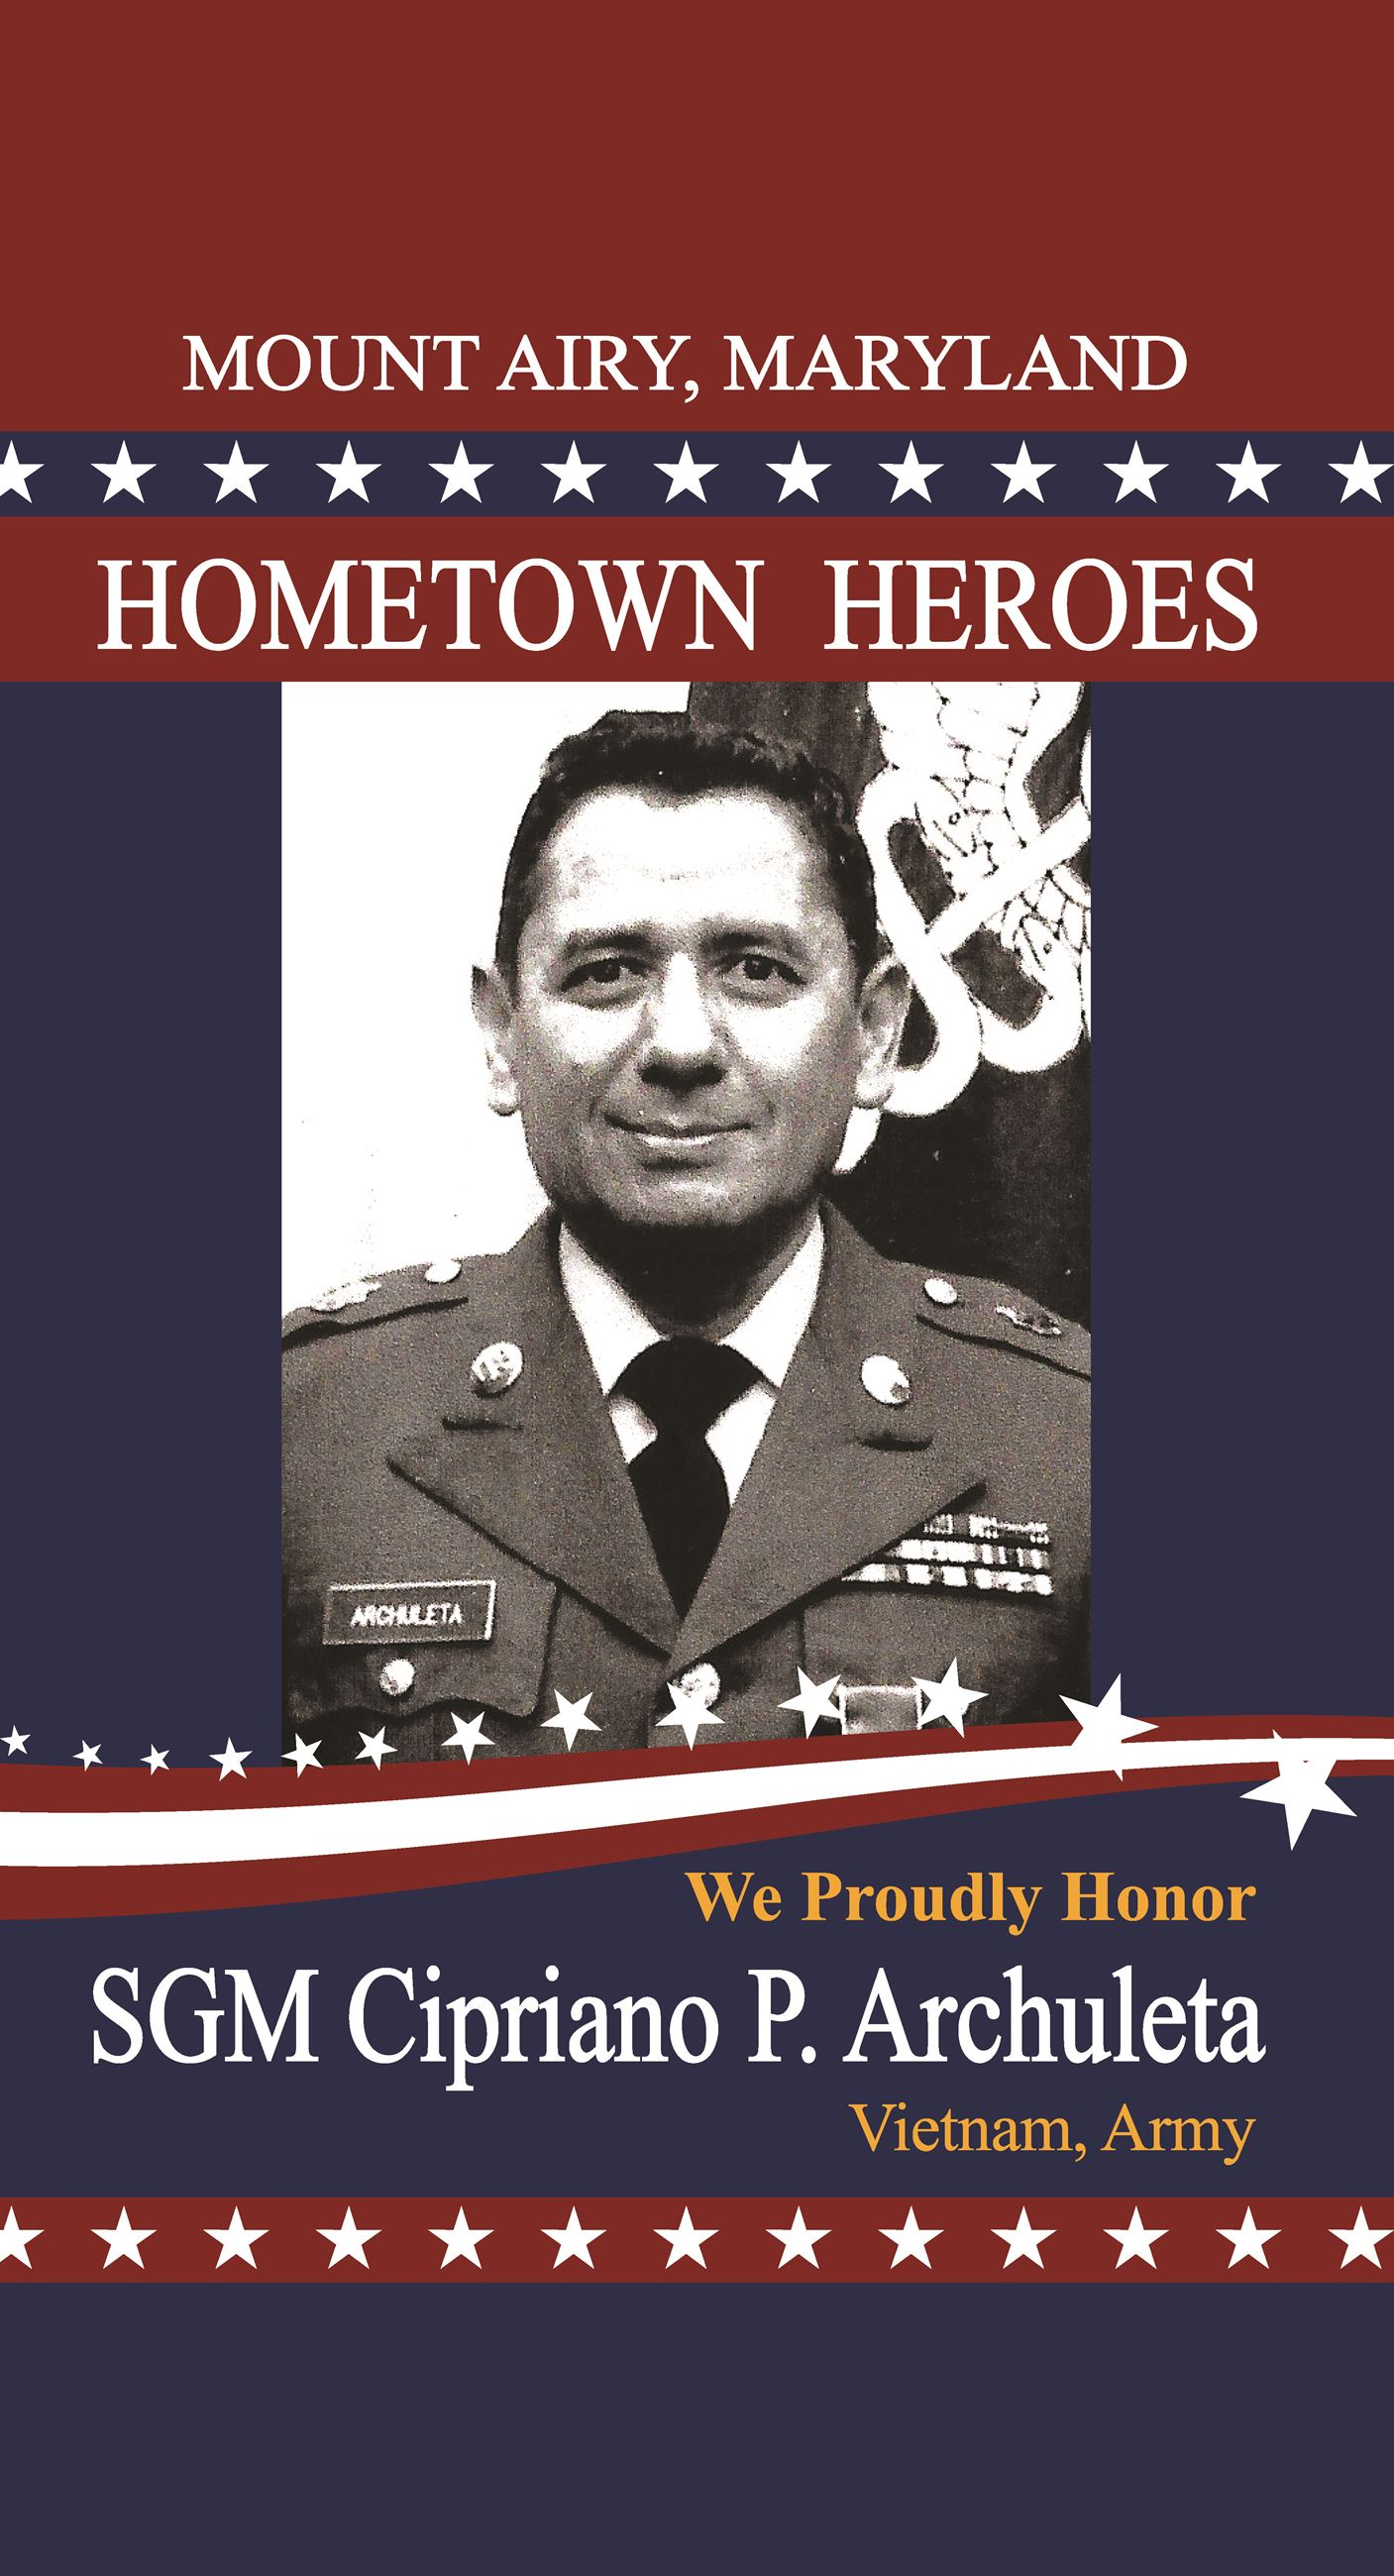 CiprianoPArchuleta_MtAiryHeroes-Flag-24x44-Proof001